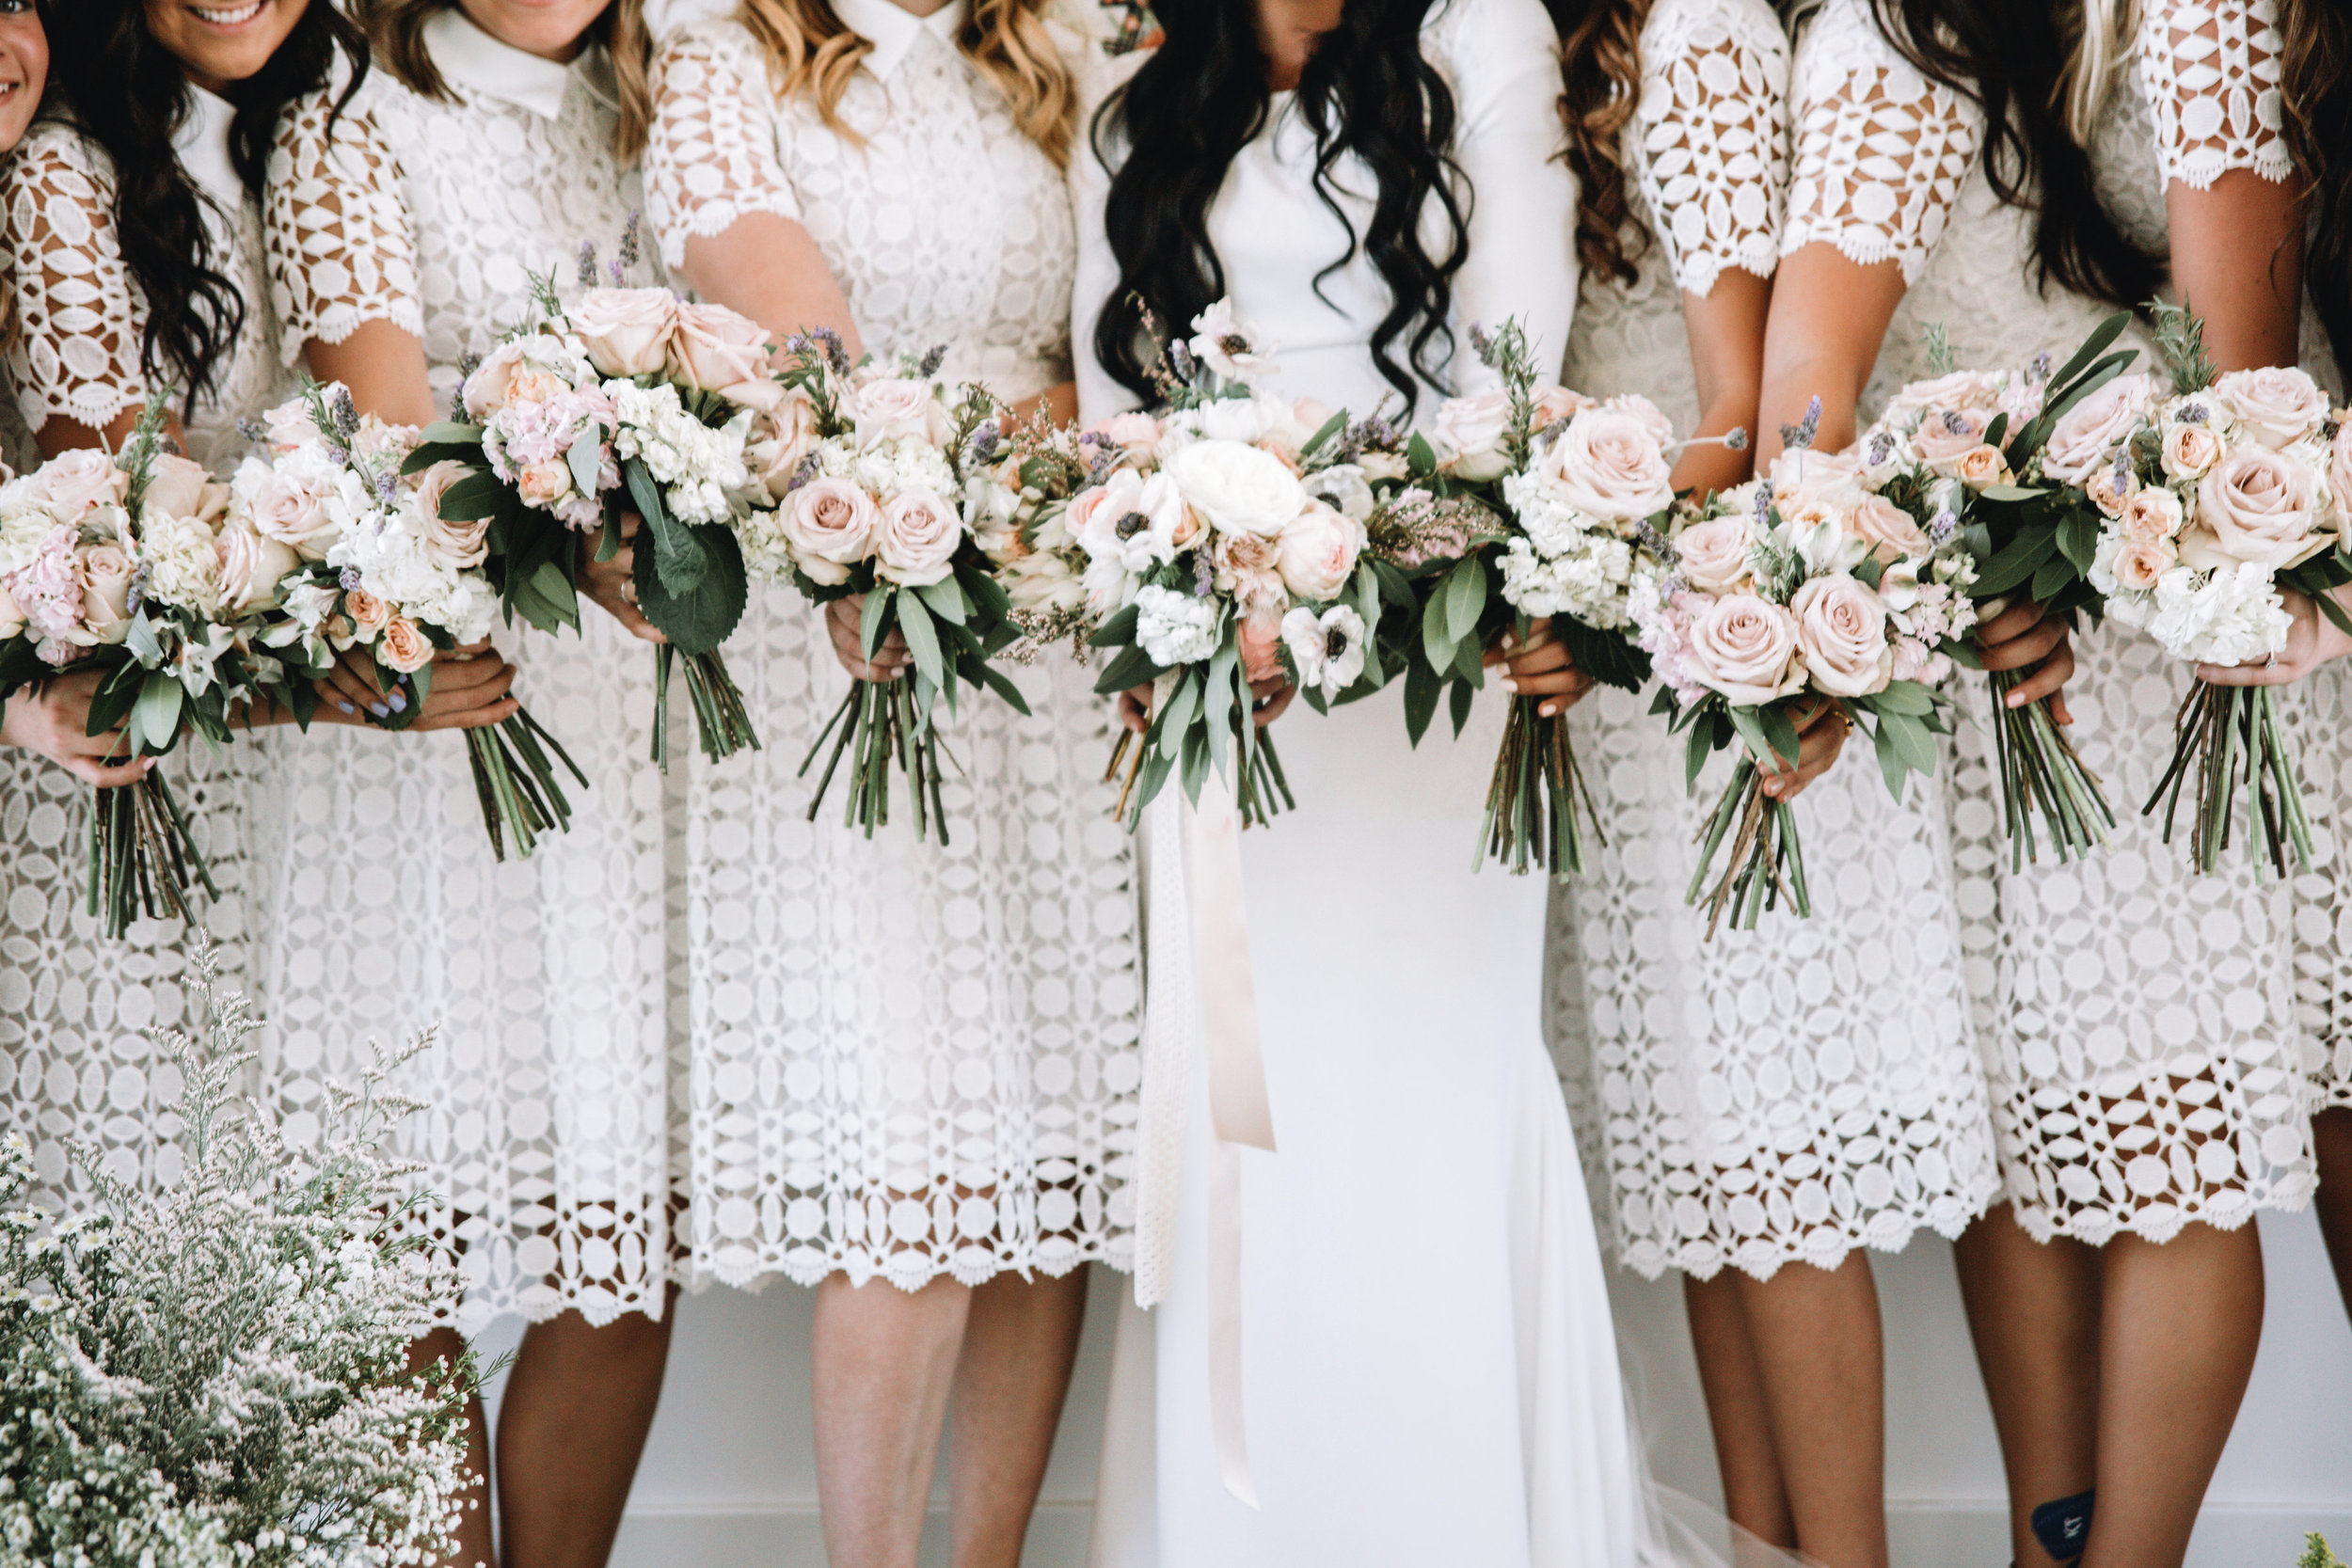 Bridesmaids dresses in white and lace